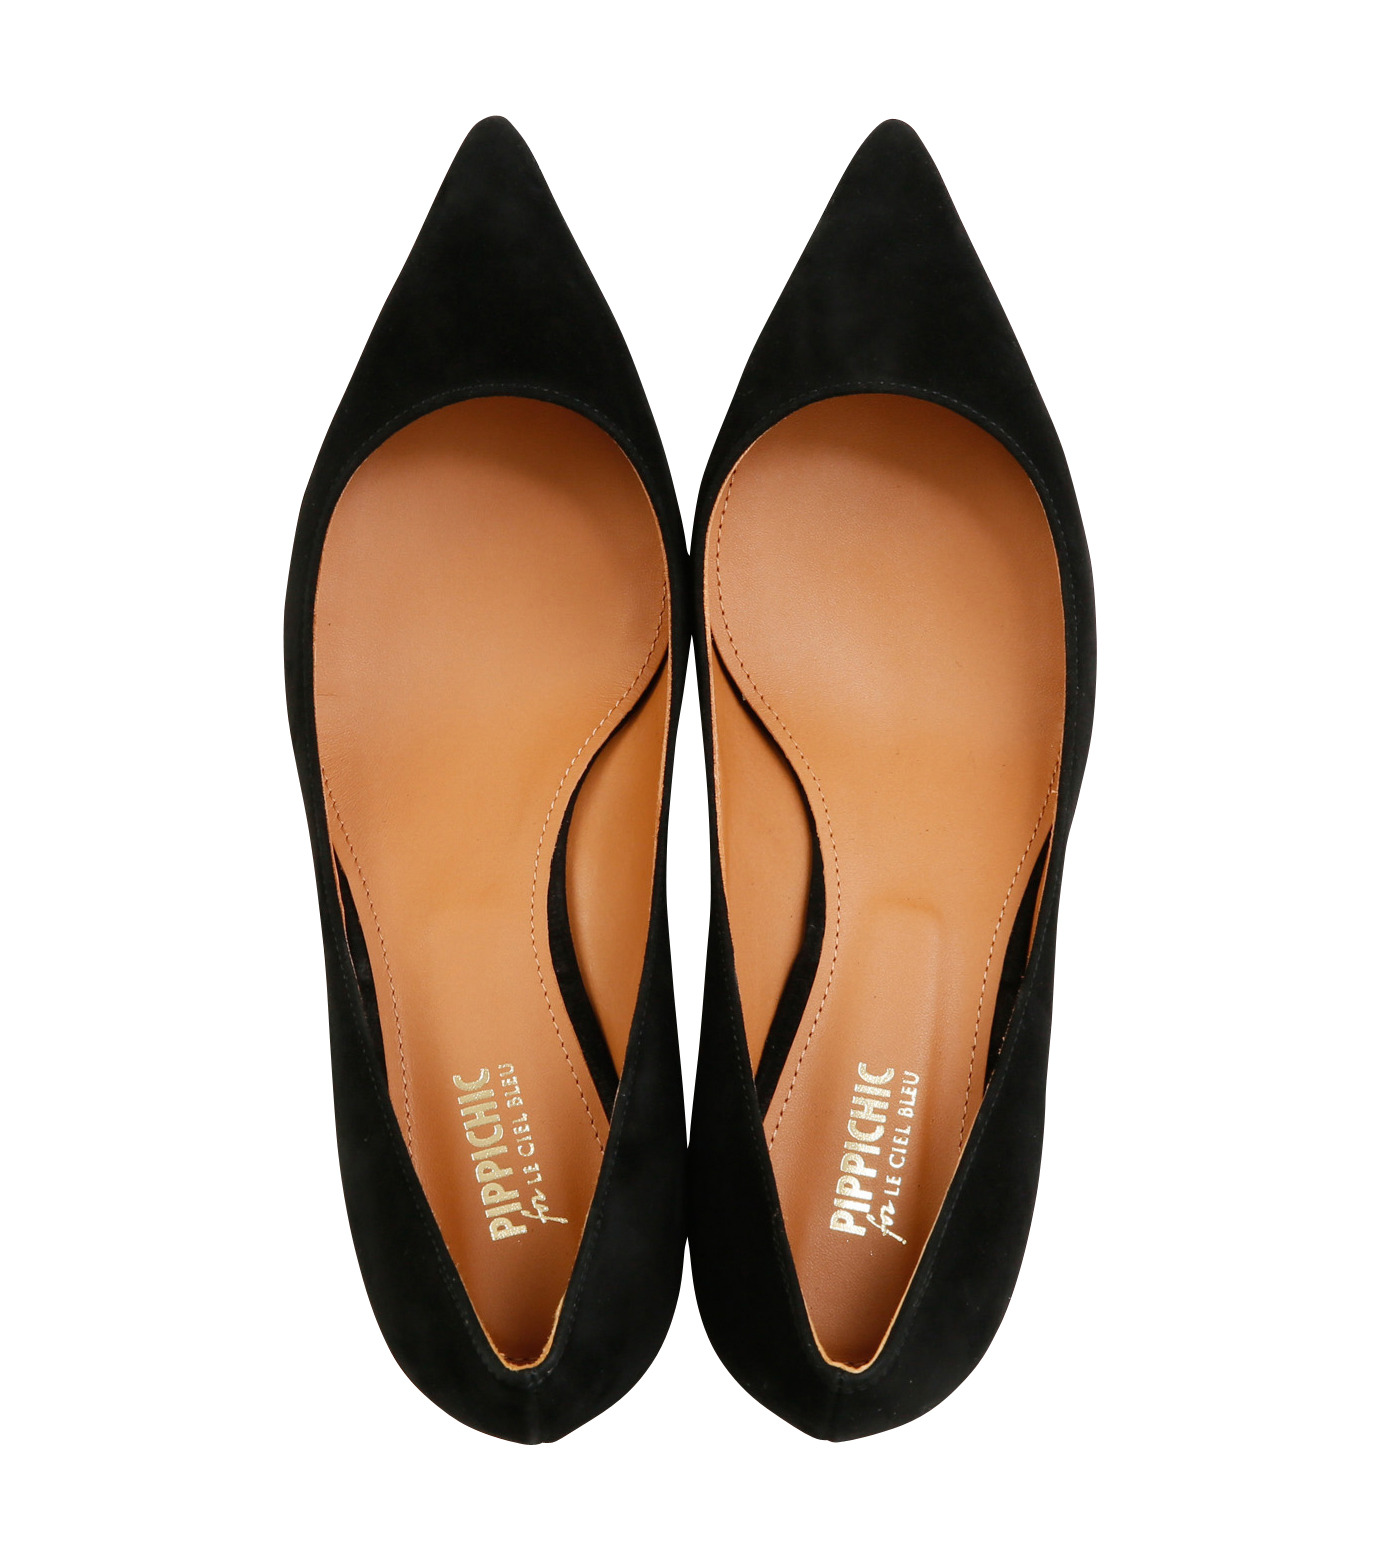 PIPPICHIC(ピッピシック)のPointed Toe 50mm Heel-BLACK(パンプス/pumps)-PP16S-CHR7-L-13 拡大詳細画像4